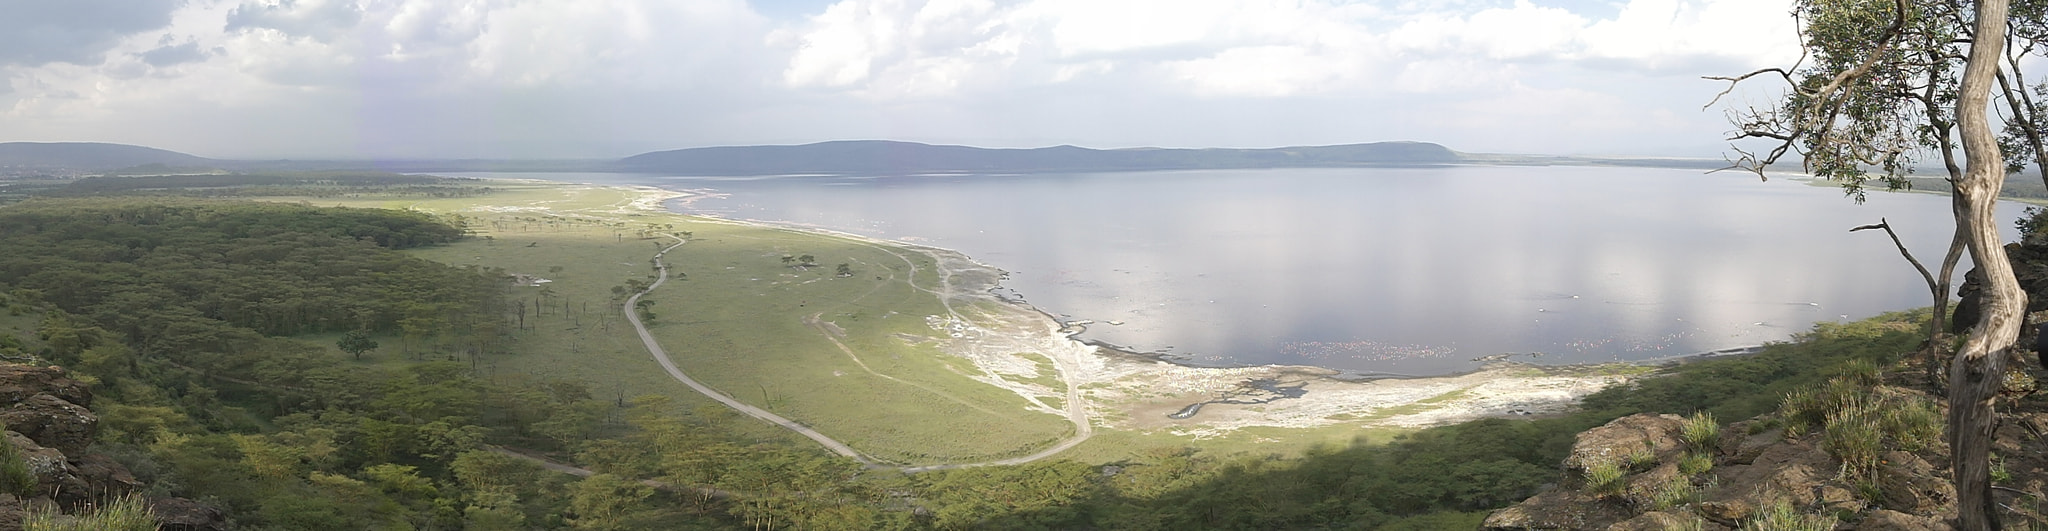 Photograph Lake Nakuru Panoramic  by Andrew Pickles on 500px